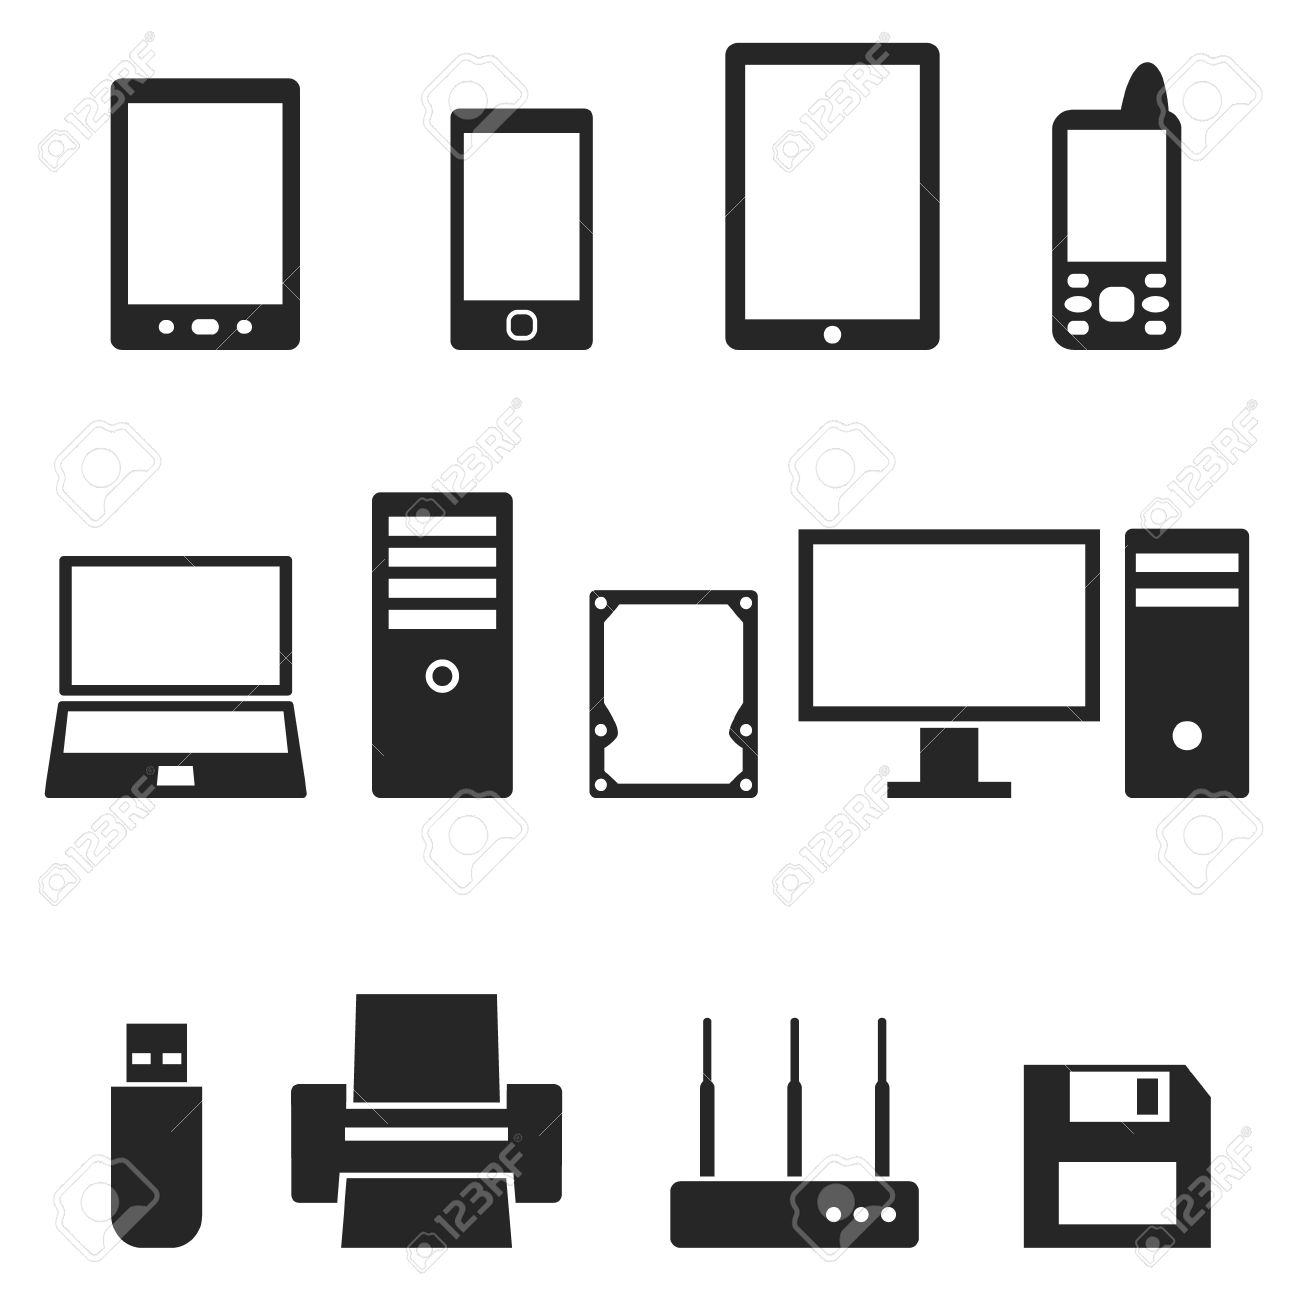 Hardware Clipart